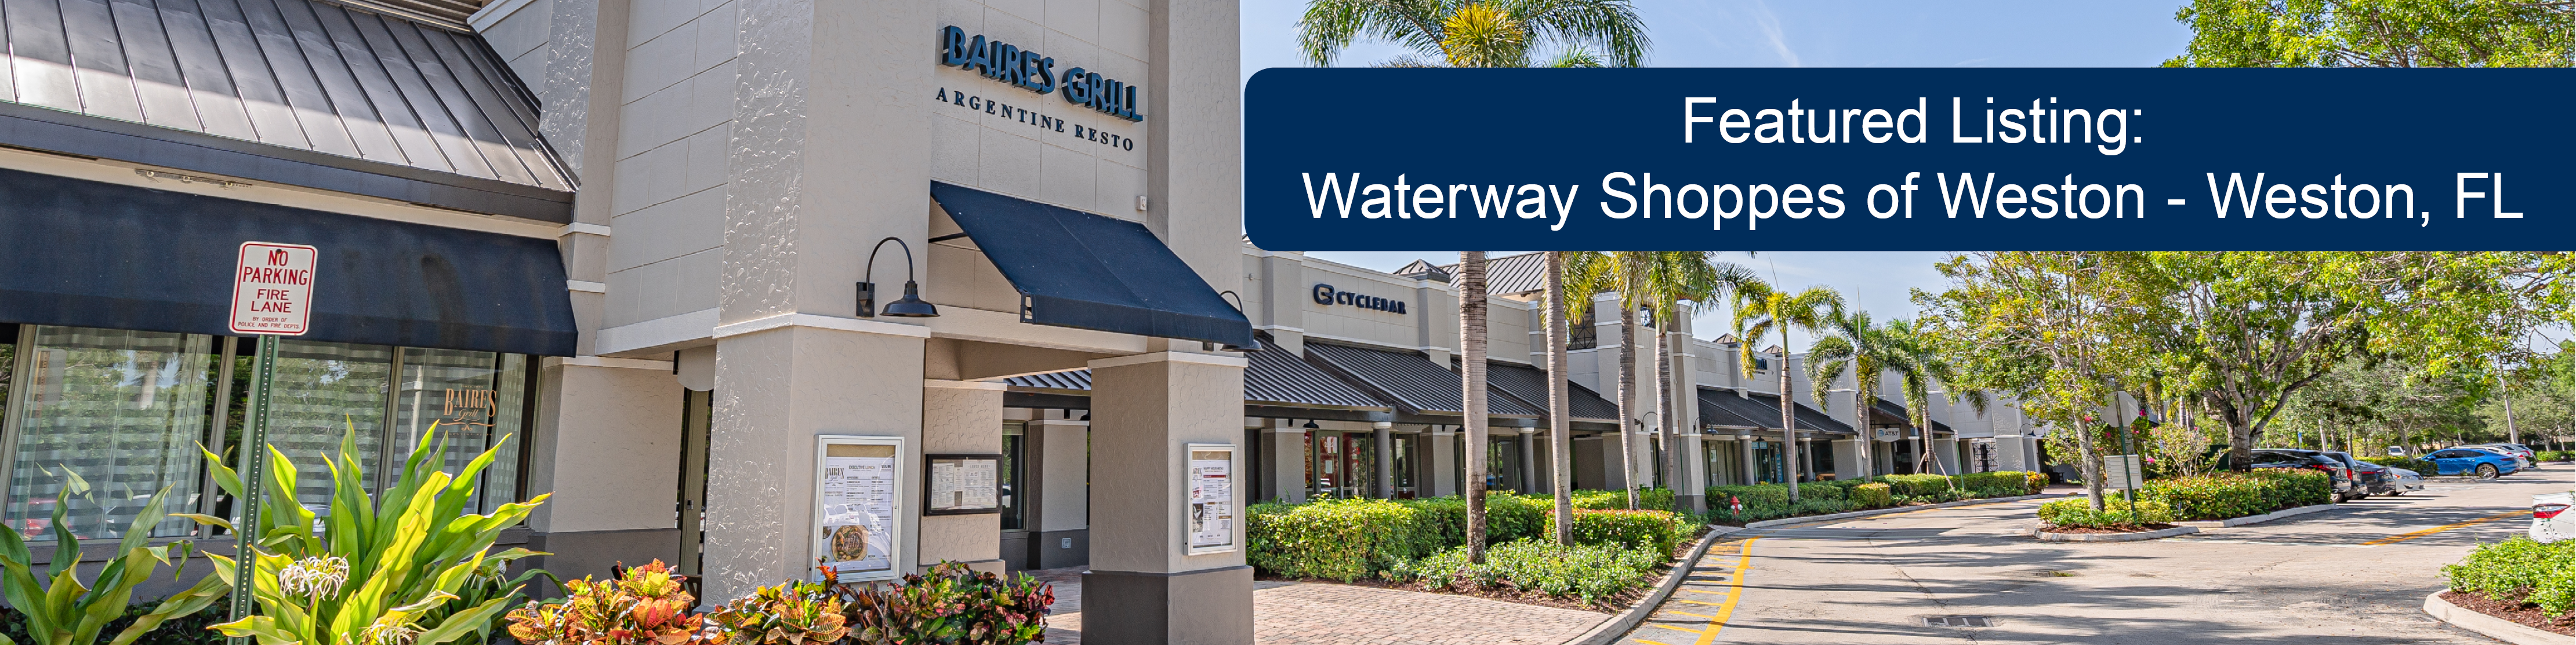 Waterway Shoppes